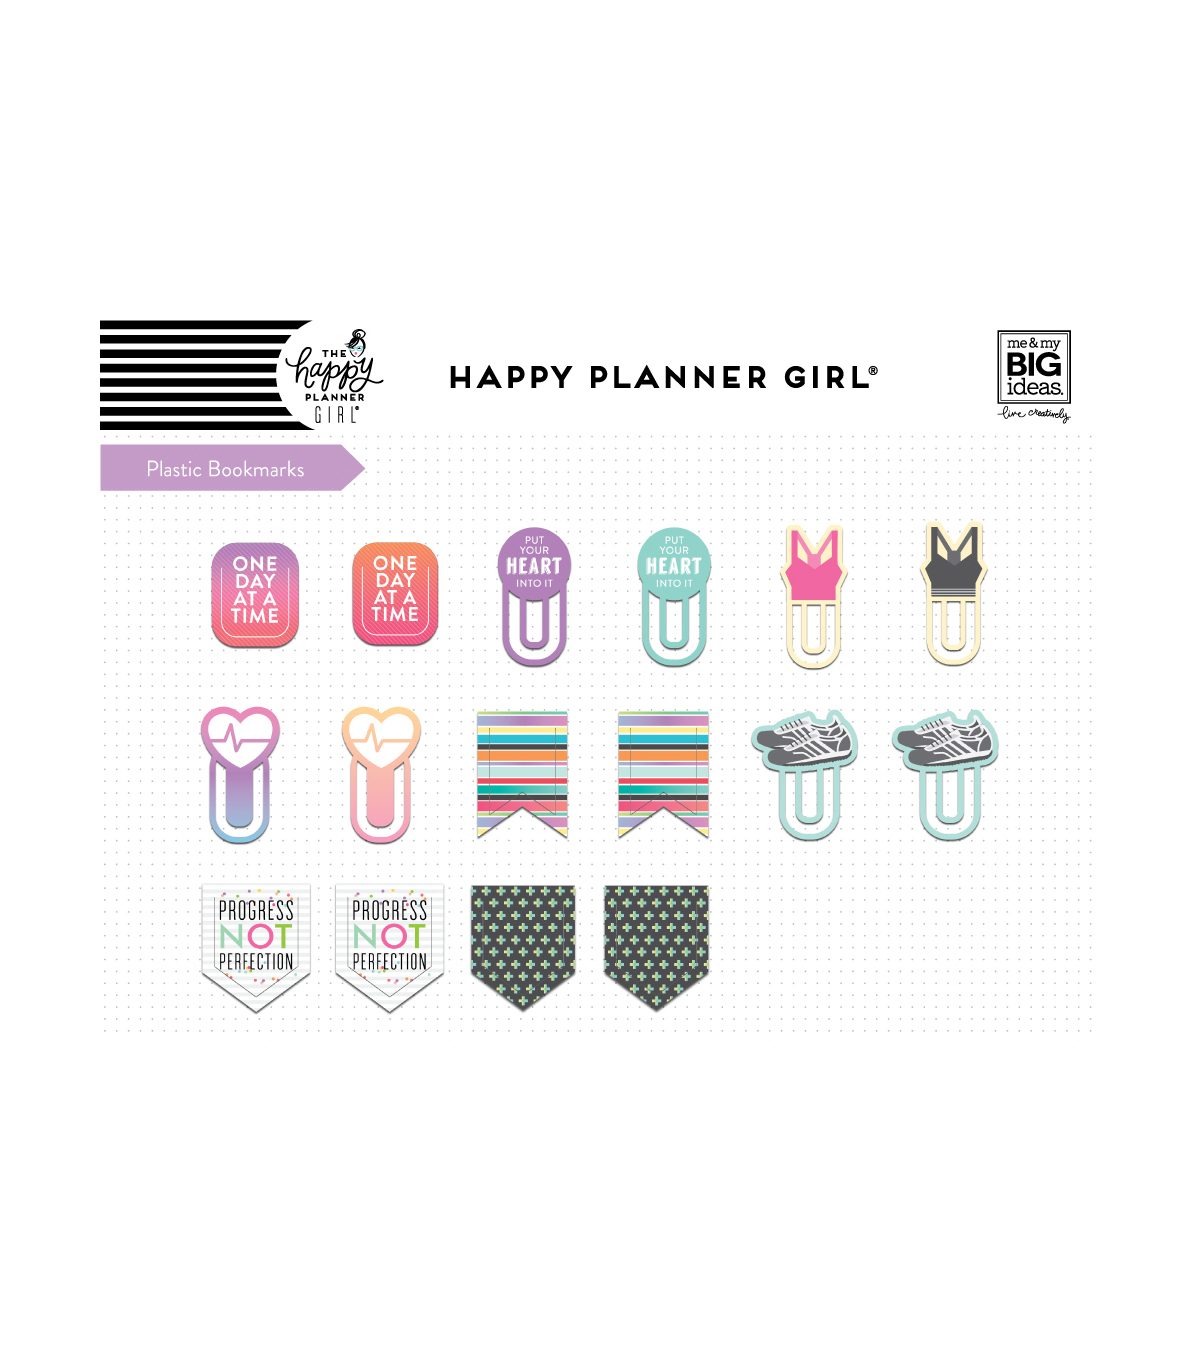 The Happy Planner Girl Bookmarks-Healthy Hero